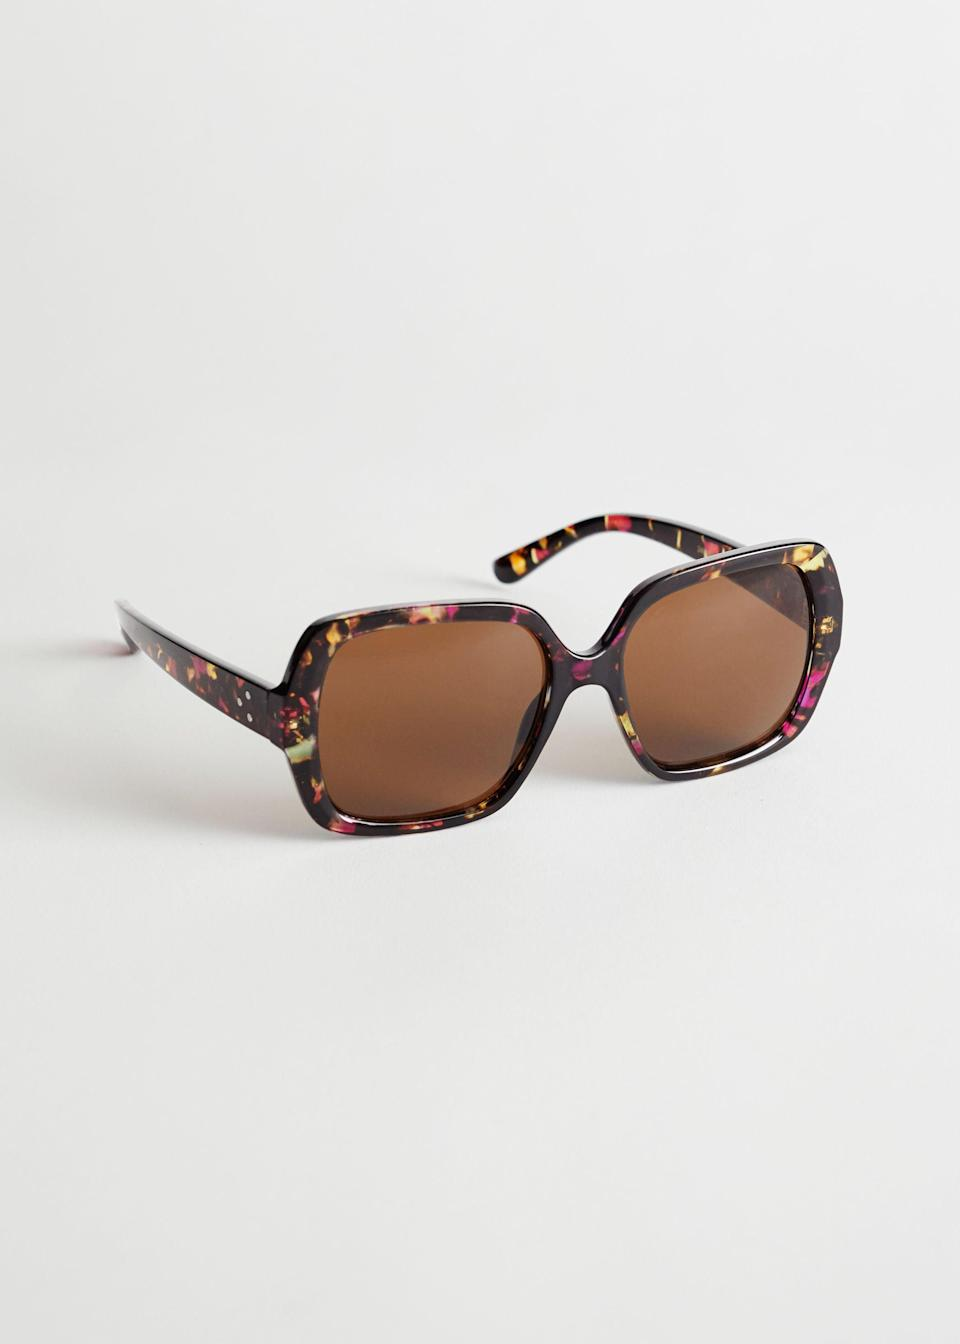 """<br> <br> <strong>& Other Stories</strong> Squared Tortoise Sunglasses, $, available at <a href=""""https://go.skimresources.com/?id=30283X879131&url=https%3A%2F%2Fwww.stories.com%2Fen_usd%2Faccessories%2Fsunglasses%2Fproduct.squared-tortoise-sunglasses-purple.0859943001.html"""" rel=""""nofollow noopener"""" target=""""_blank"""" data-ylk=""""slk:& Other Stories"""" class=""""link rapid-noclick-resp"""">& Other Stories</a>"""